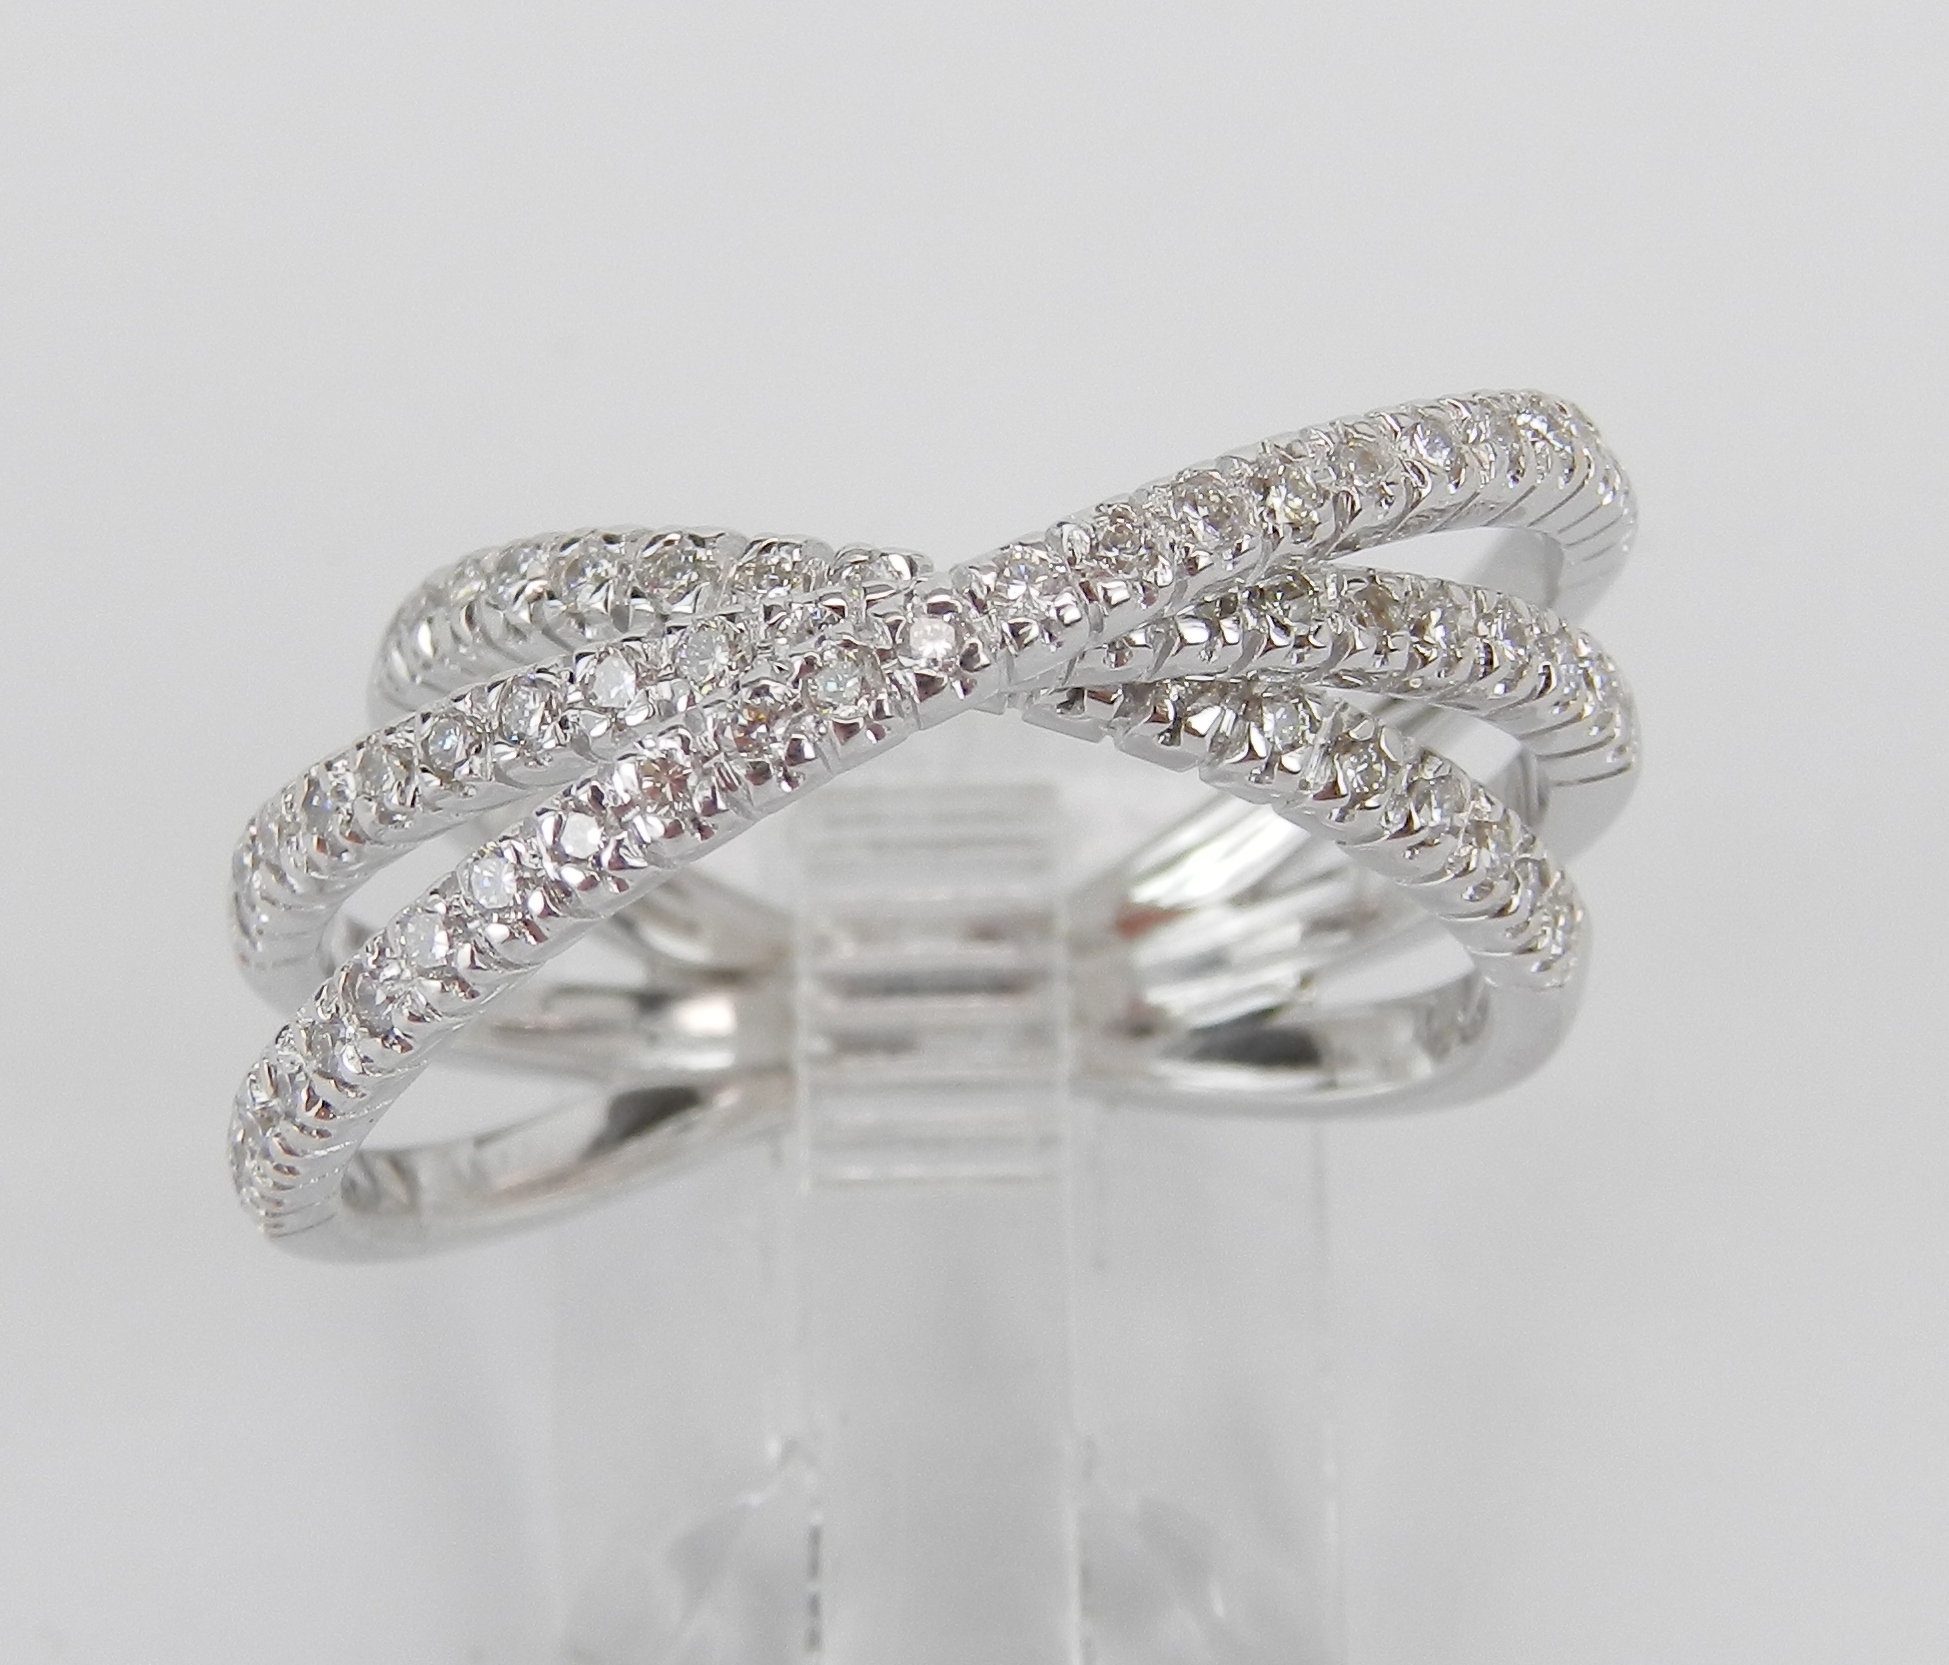 18K White Gold Diamond Crossover Wedding Ring Multi Row Anniversary Band  Size  (View 5 of 25)